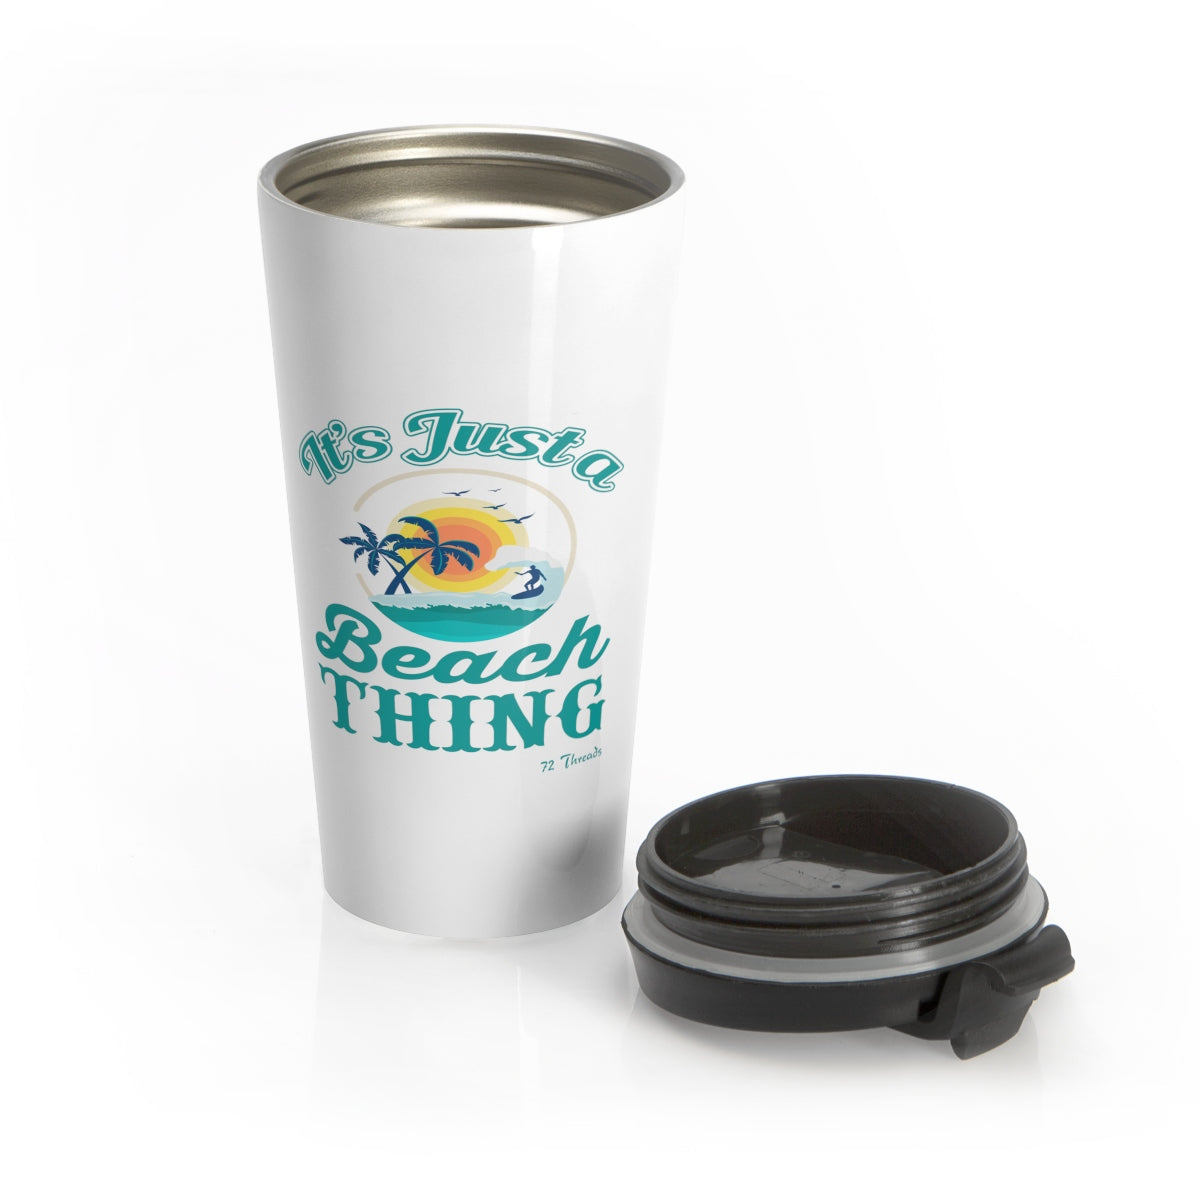 Beach Thing Travel Mug